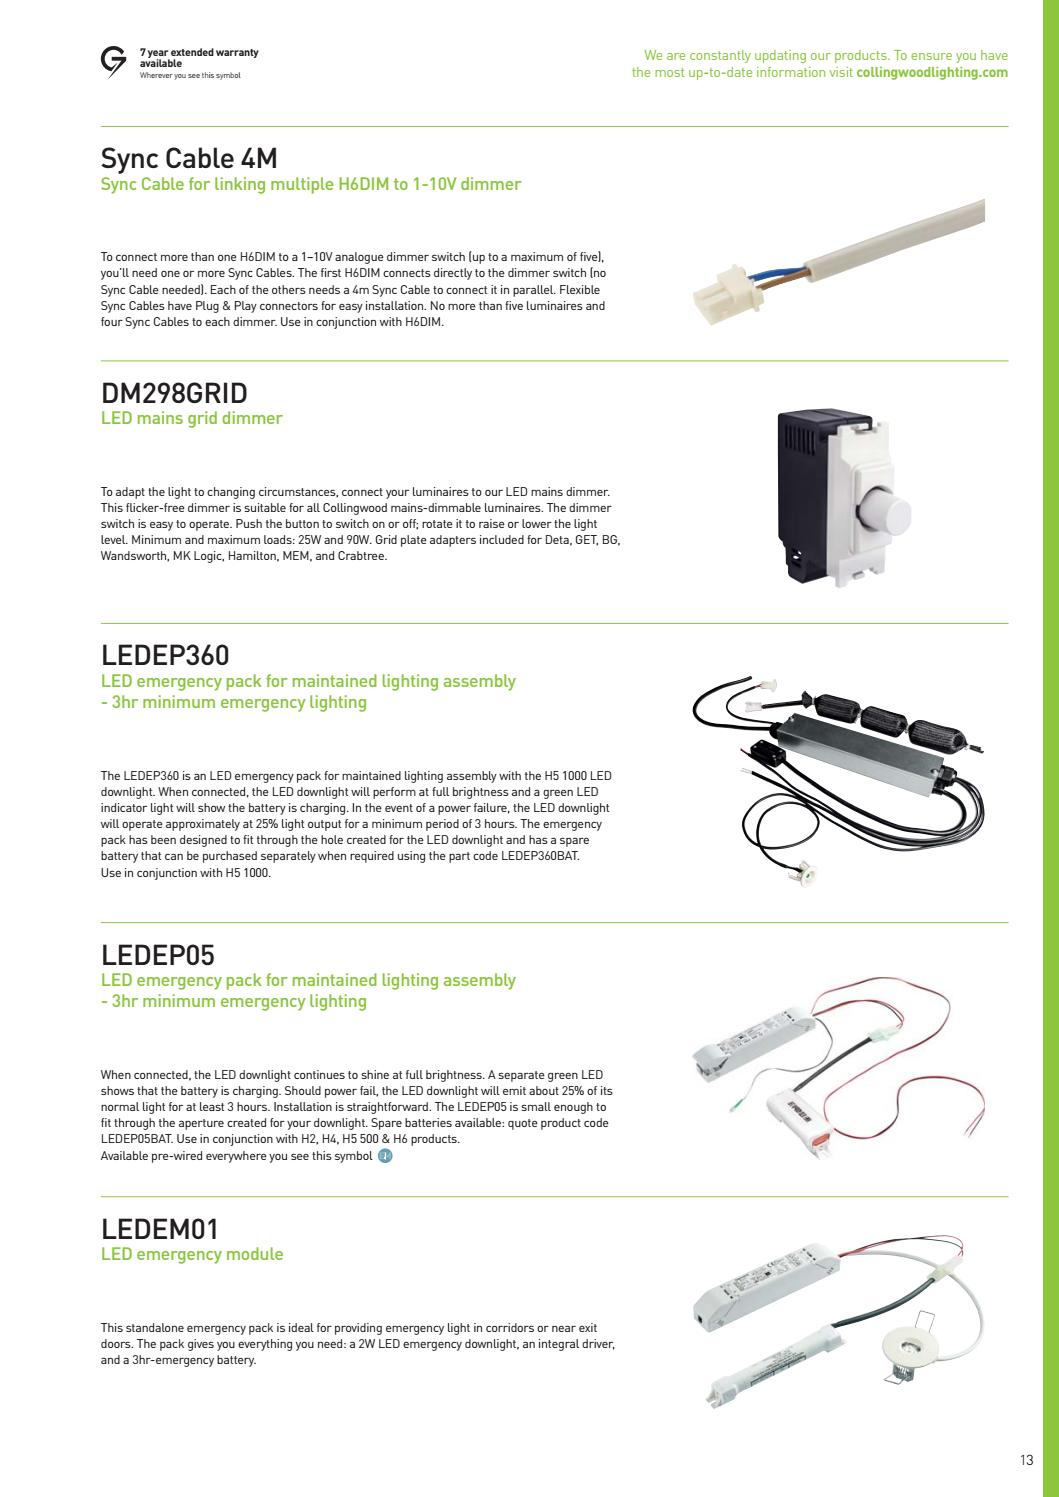 Collingswood Lighting Led Downlights Guide by KES Lighting - issuu